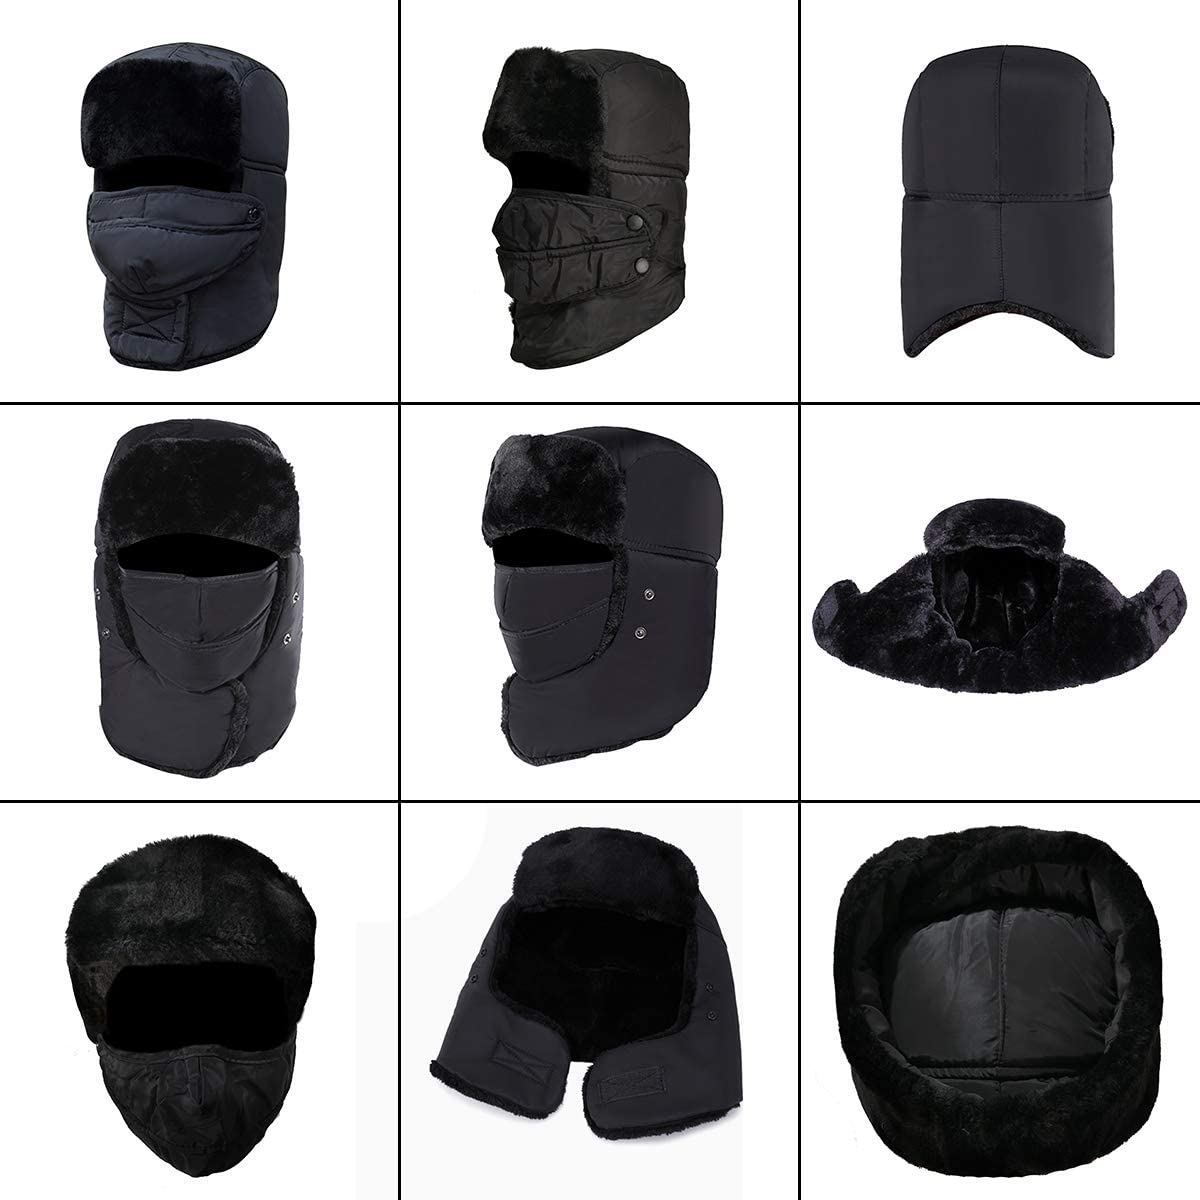 EunSung Winter Unisex Trapper hat for Mens and Womens,Hunting Trooper Hats Skiing Windproof Mask with Ear Flaps Keep Warm